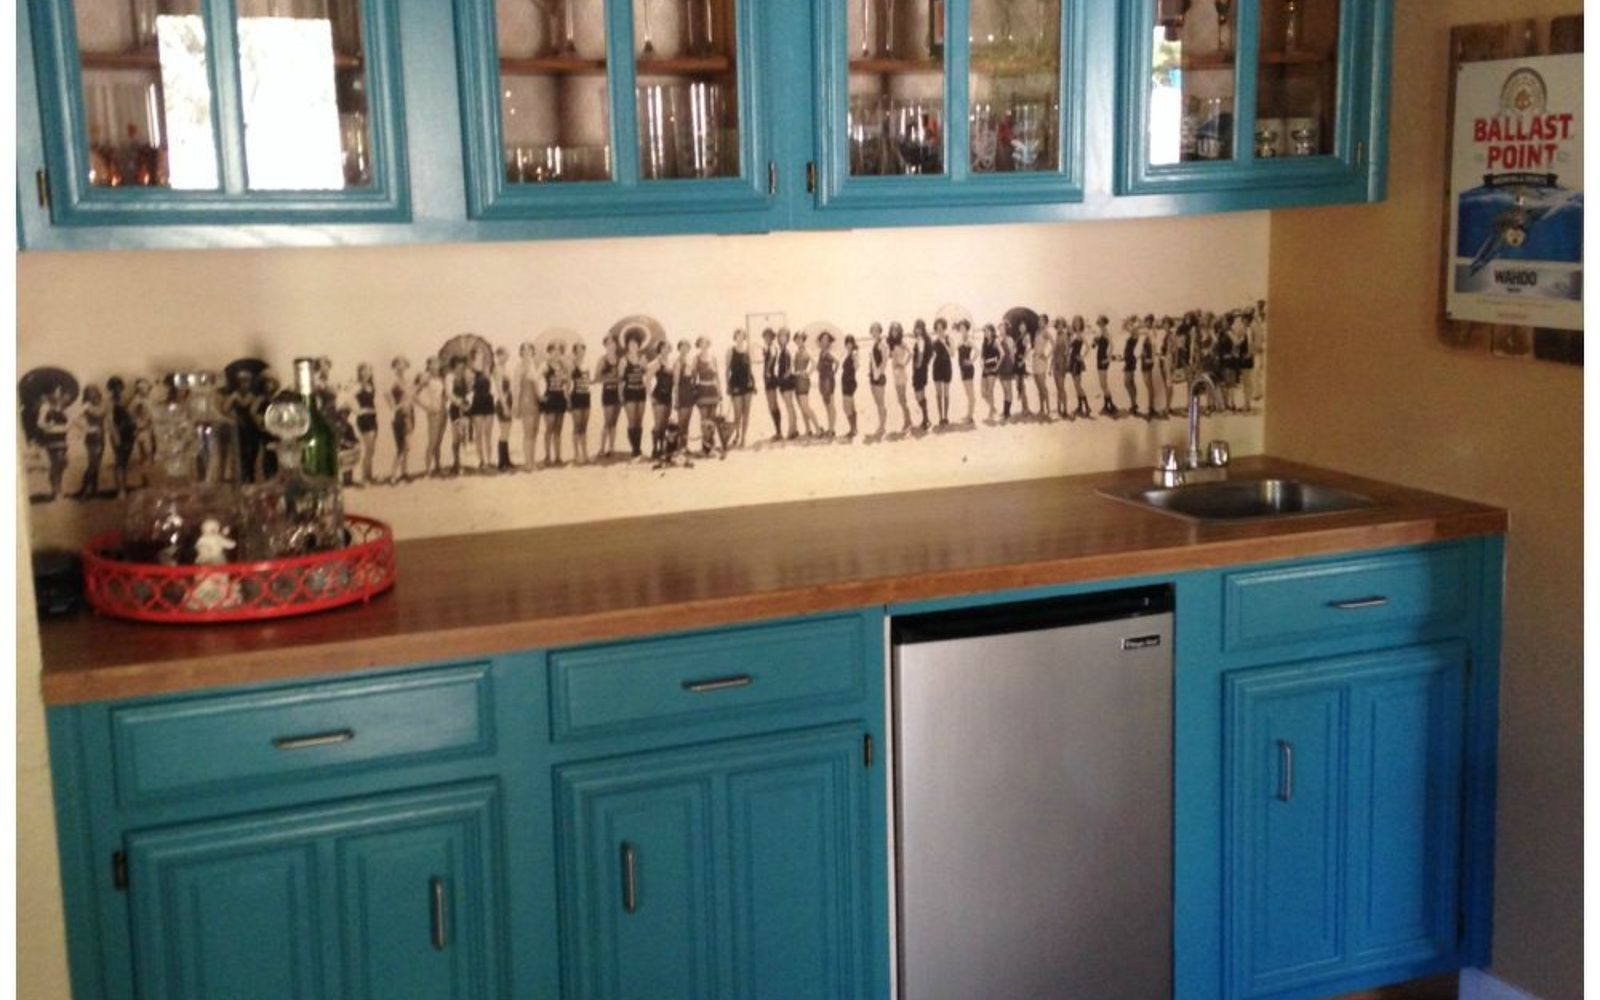 13 incredible kitchen backsplash ideas that aren t tile hometalk paste on a 1920 s mural